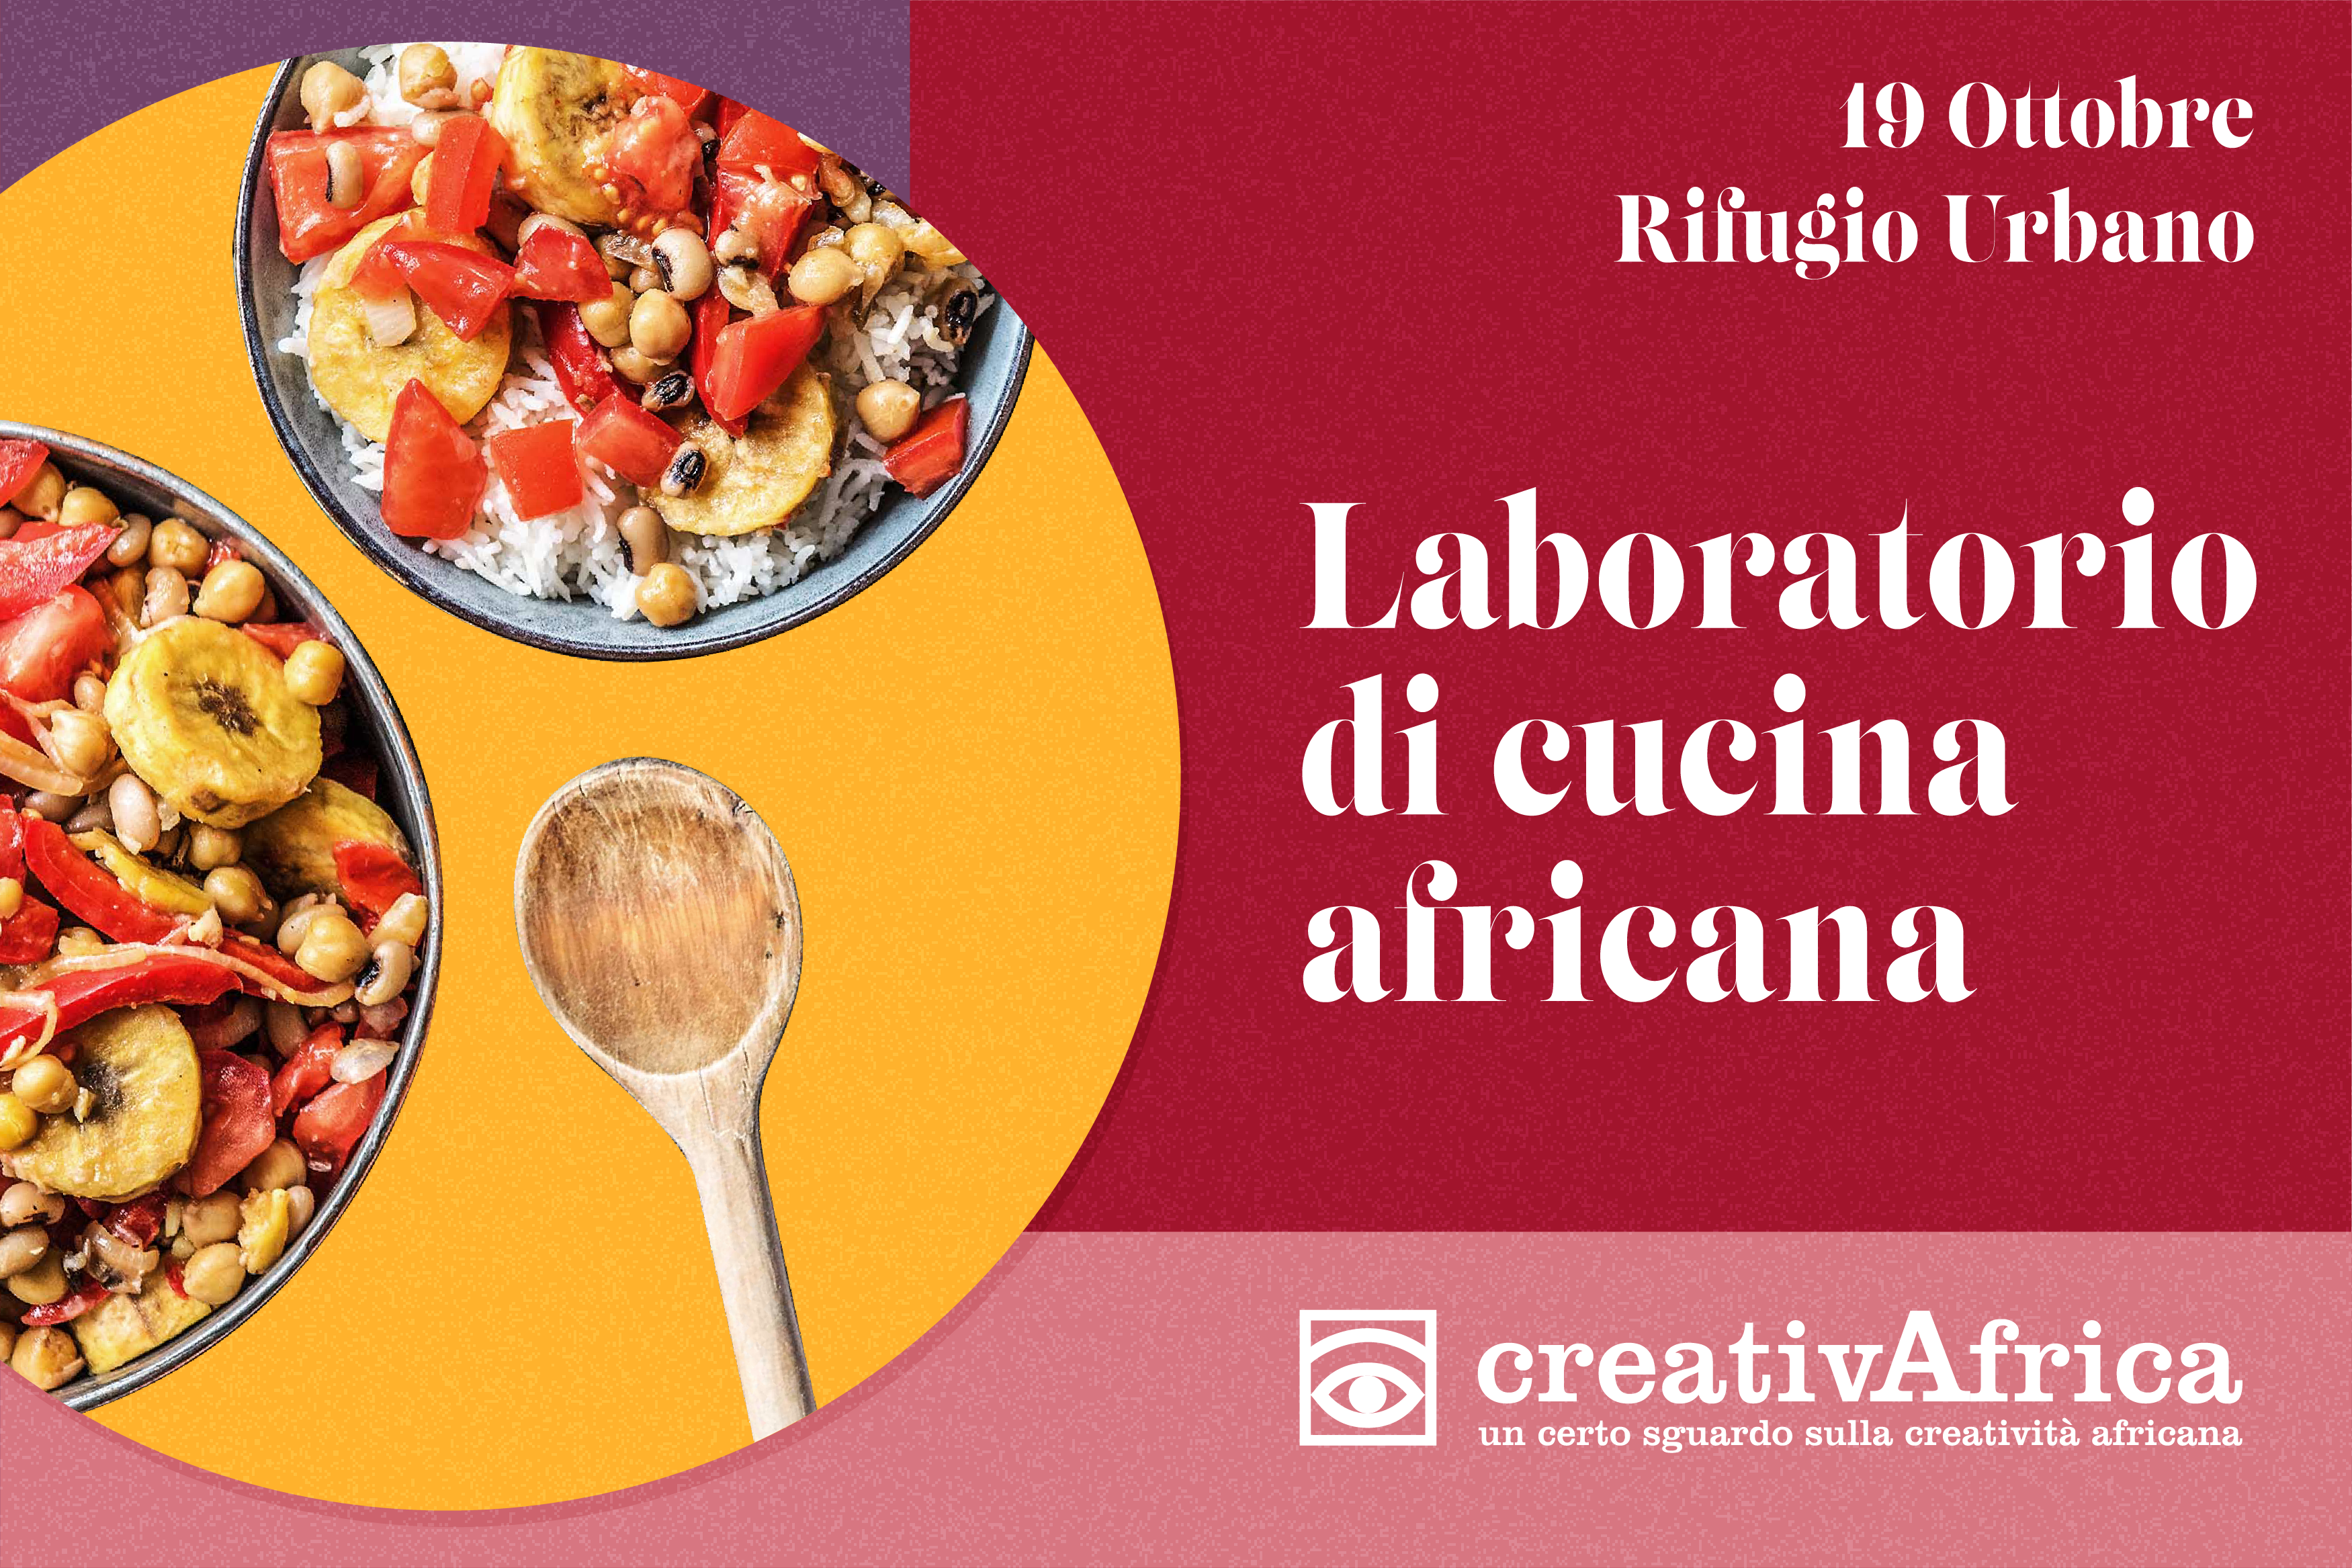 Workshop di cucina africana cover image